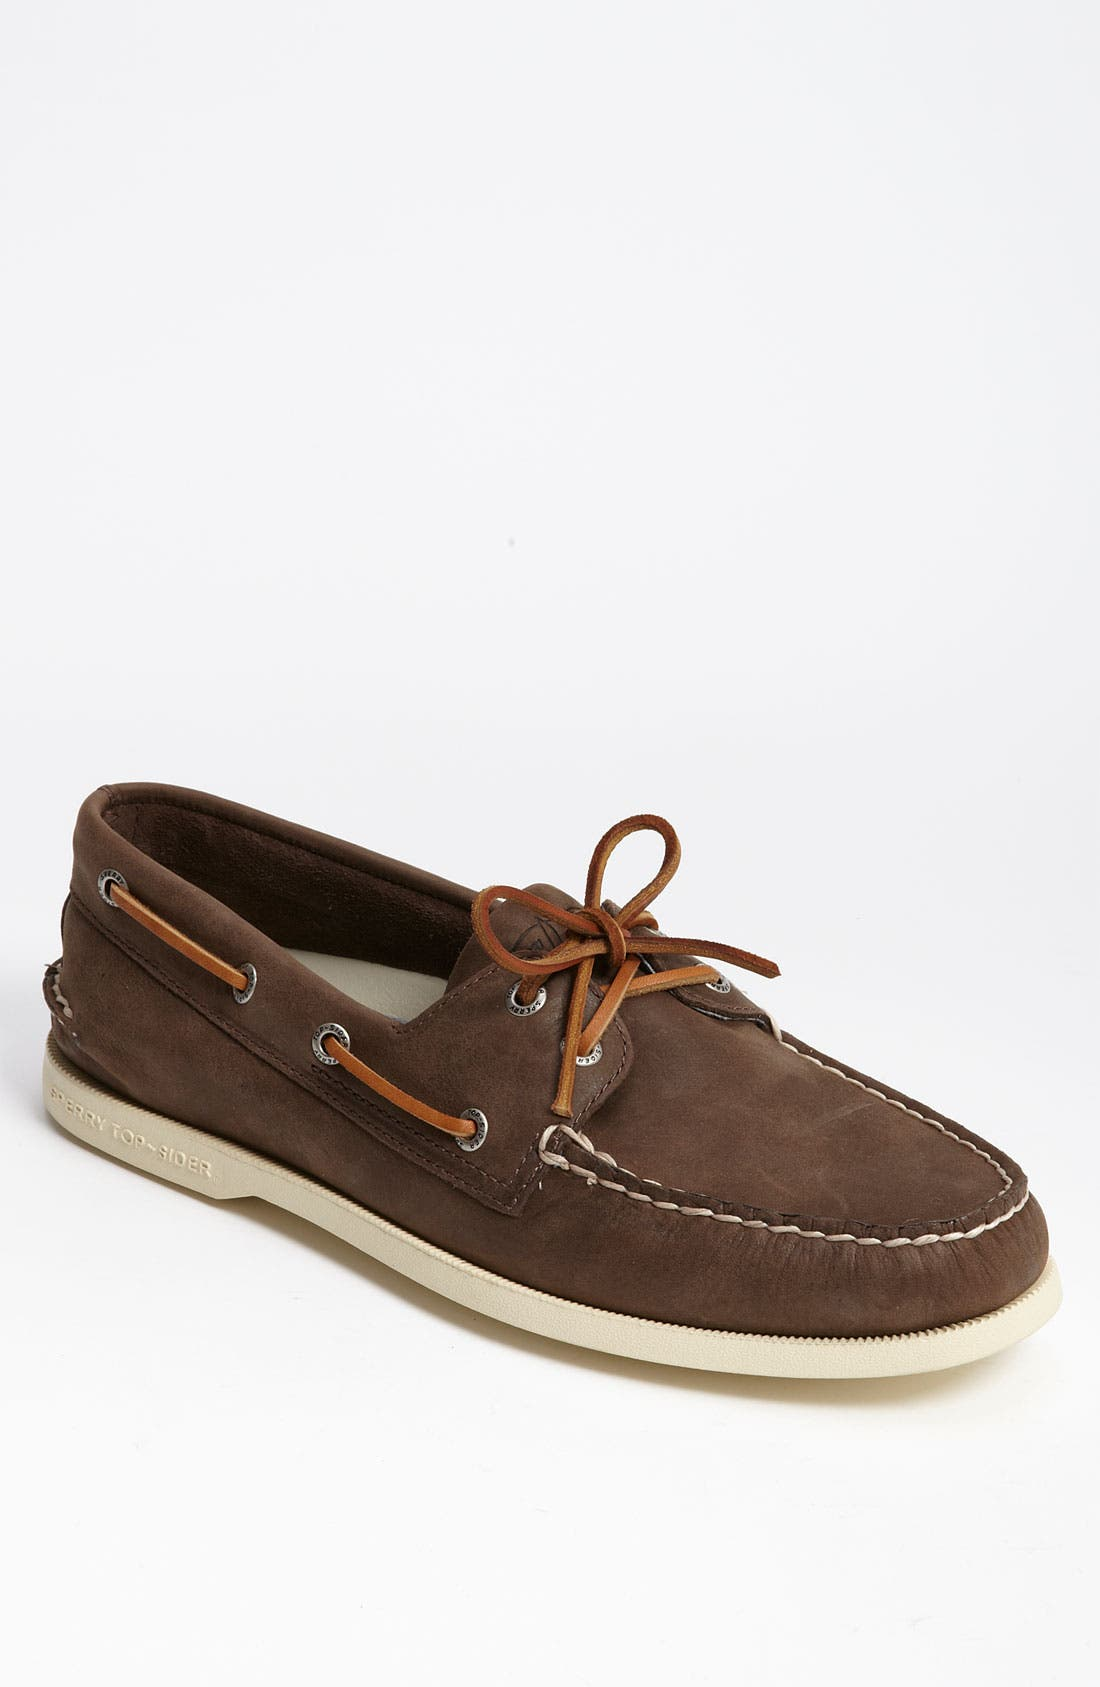 Alternate Image 1 Selected - Sperry Top-Sider® 'Authentic Original 2-Eye' Boat Shoe